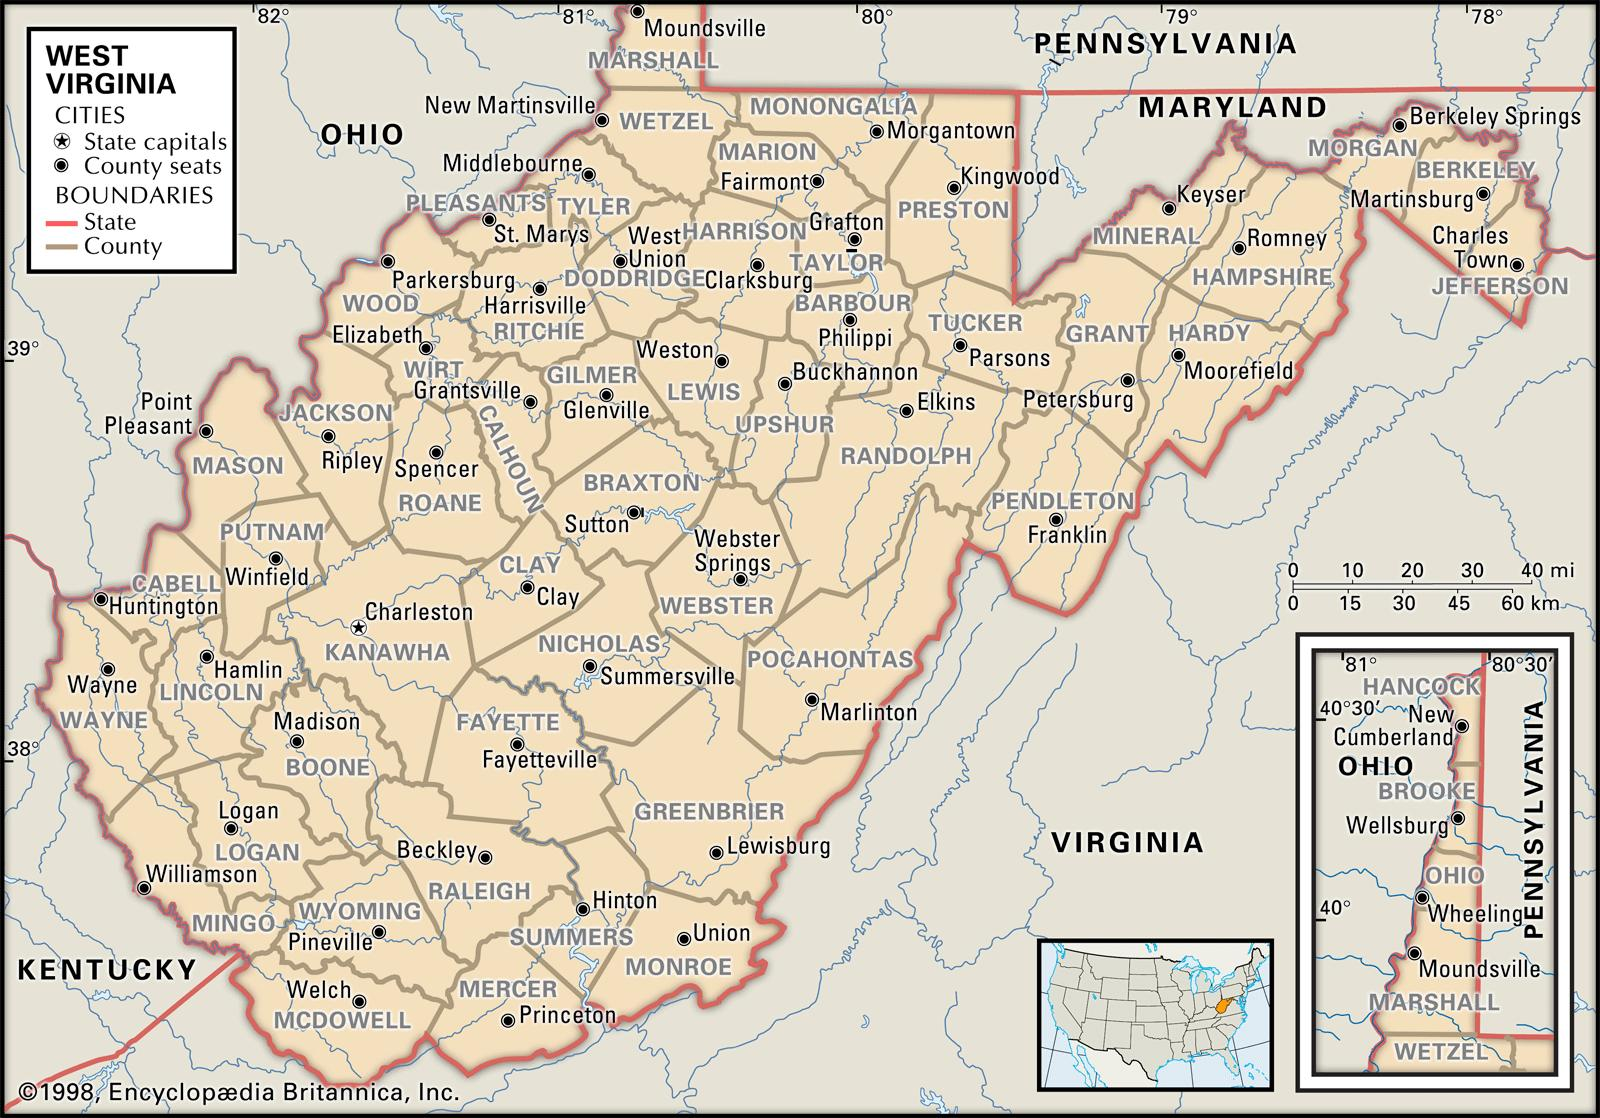 Pa State Map With Counties And Cities.State And County Maps Of West Virginia